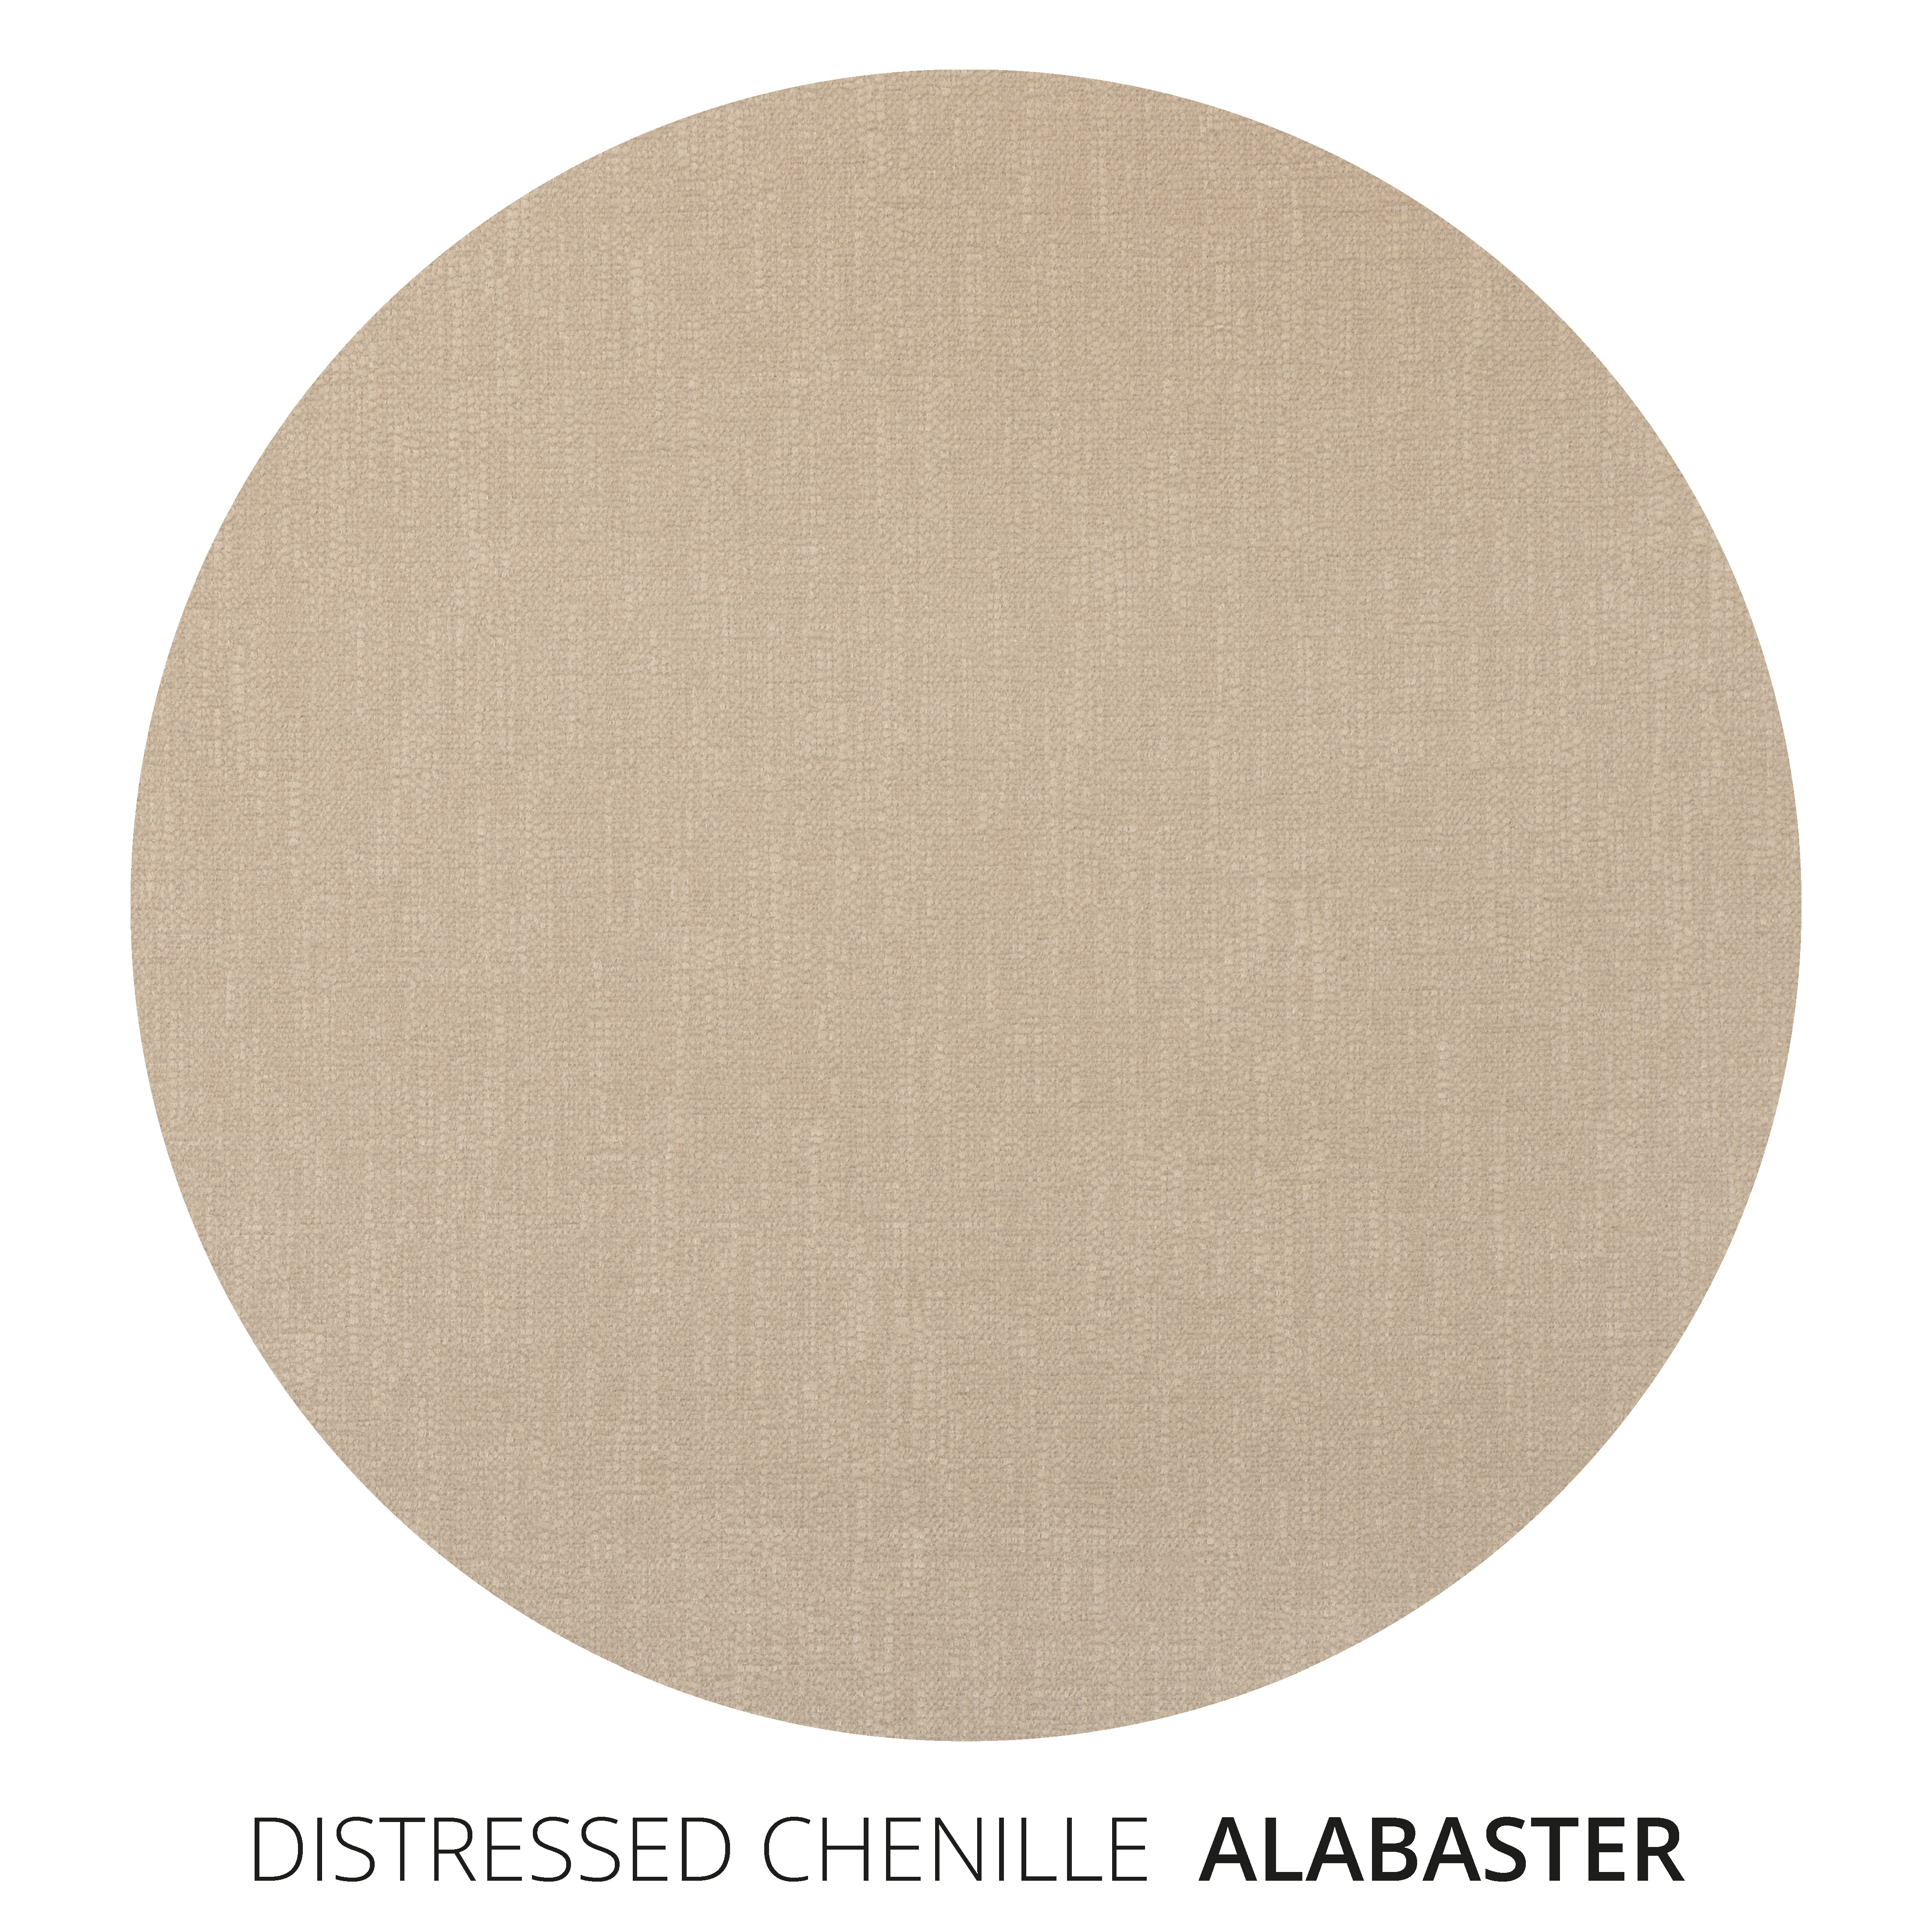 Alabaster Distressed Chenille Swatch